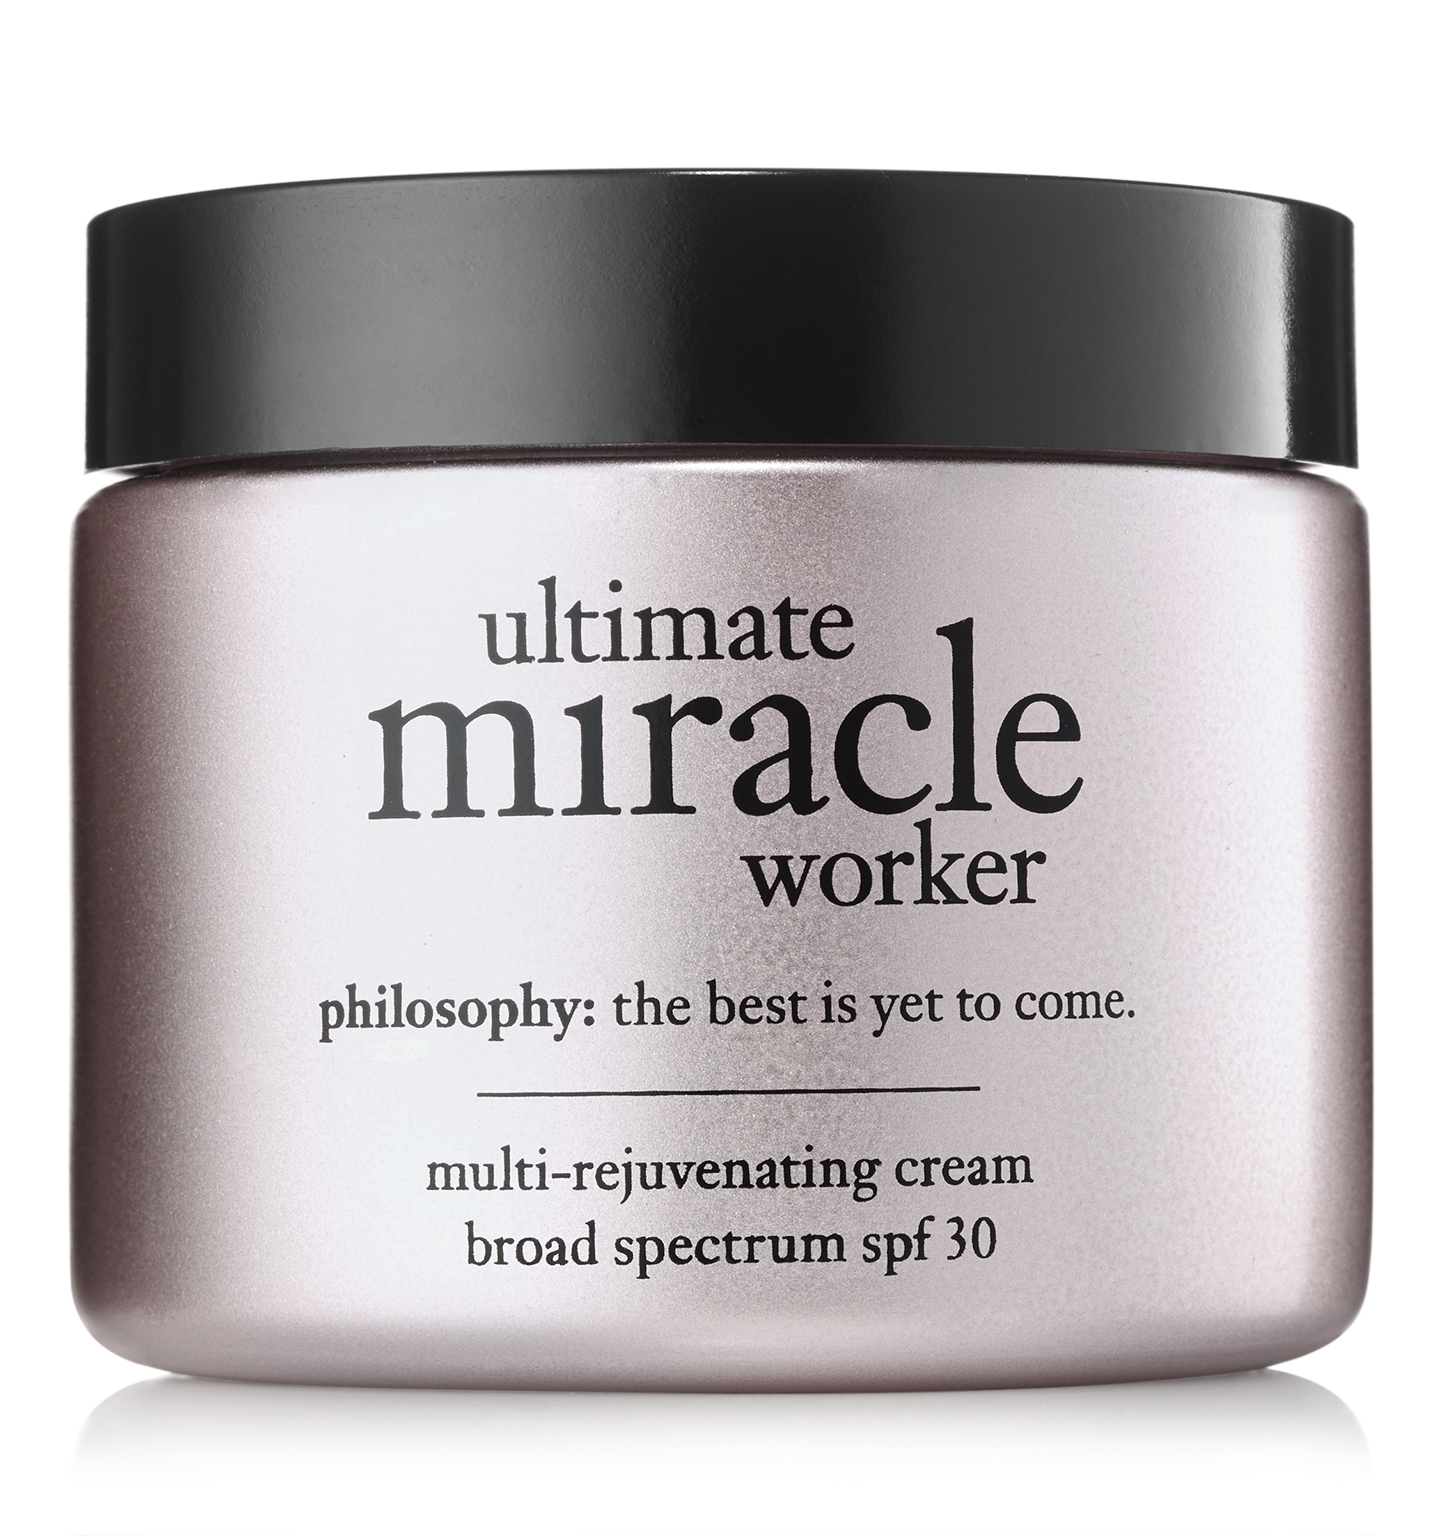 ultimate miracle worker pads reviews